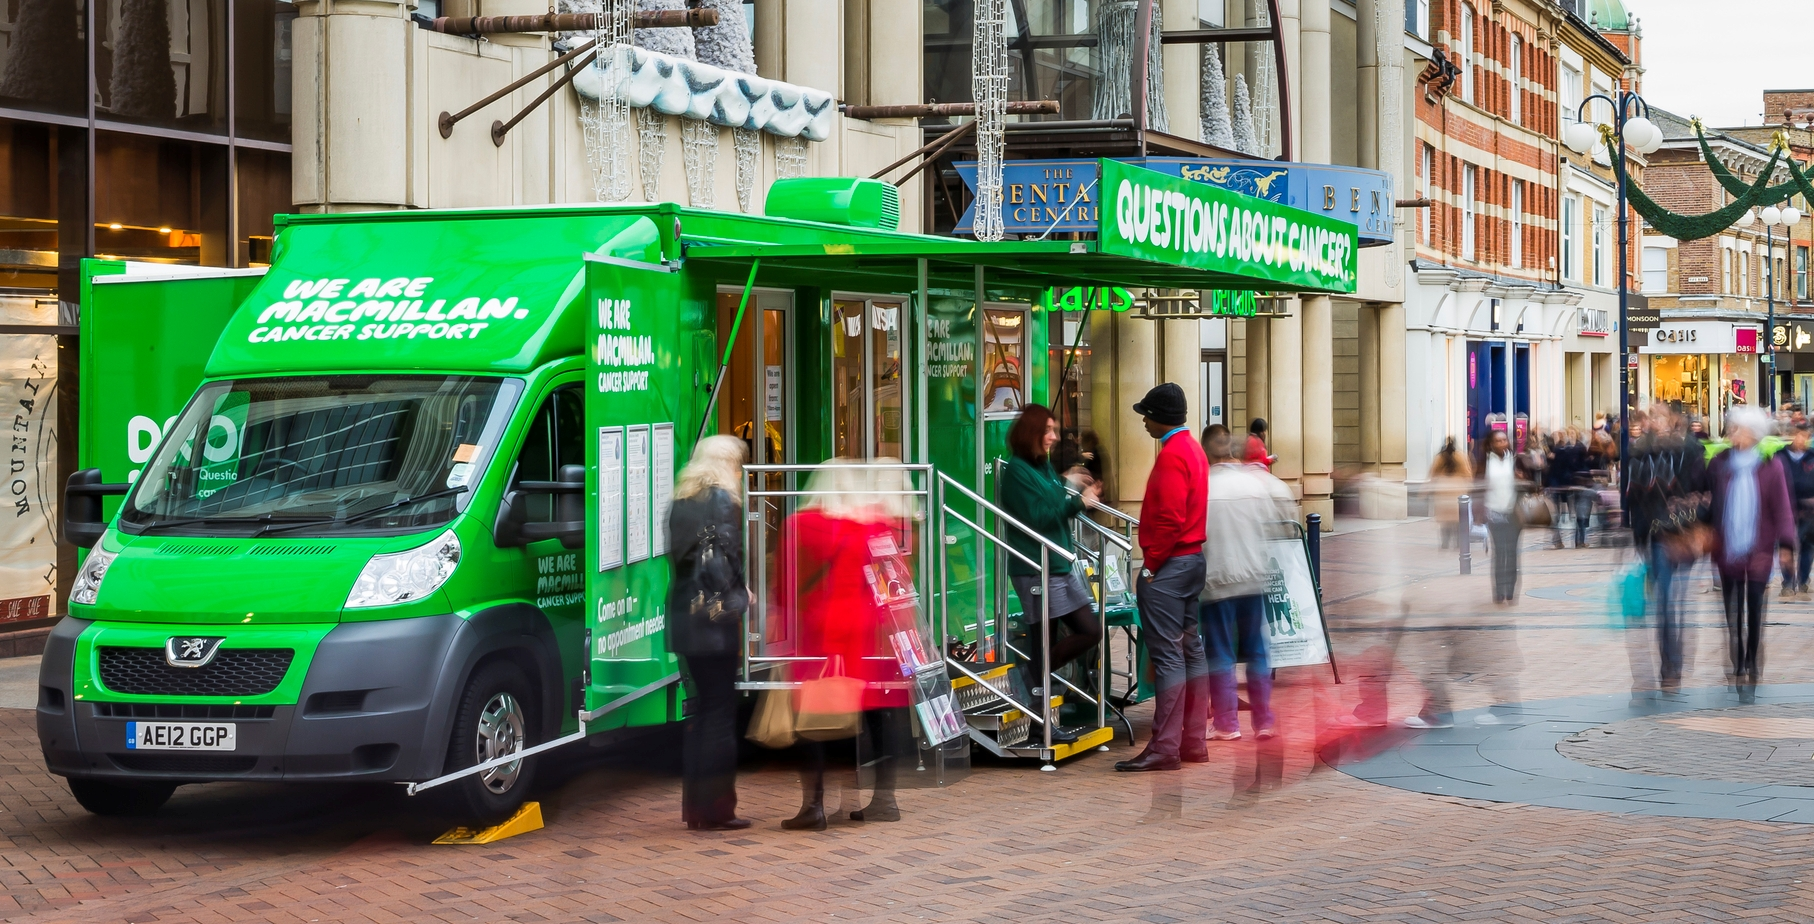 Macmillan Cancer Support Information Service in Salisbury